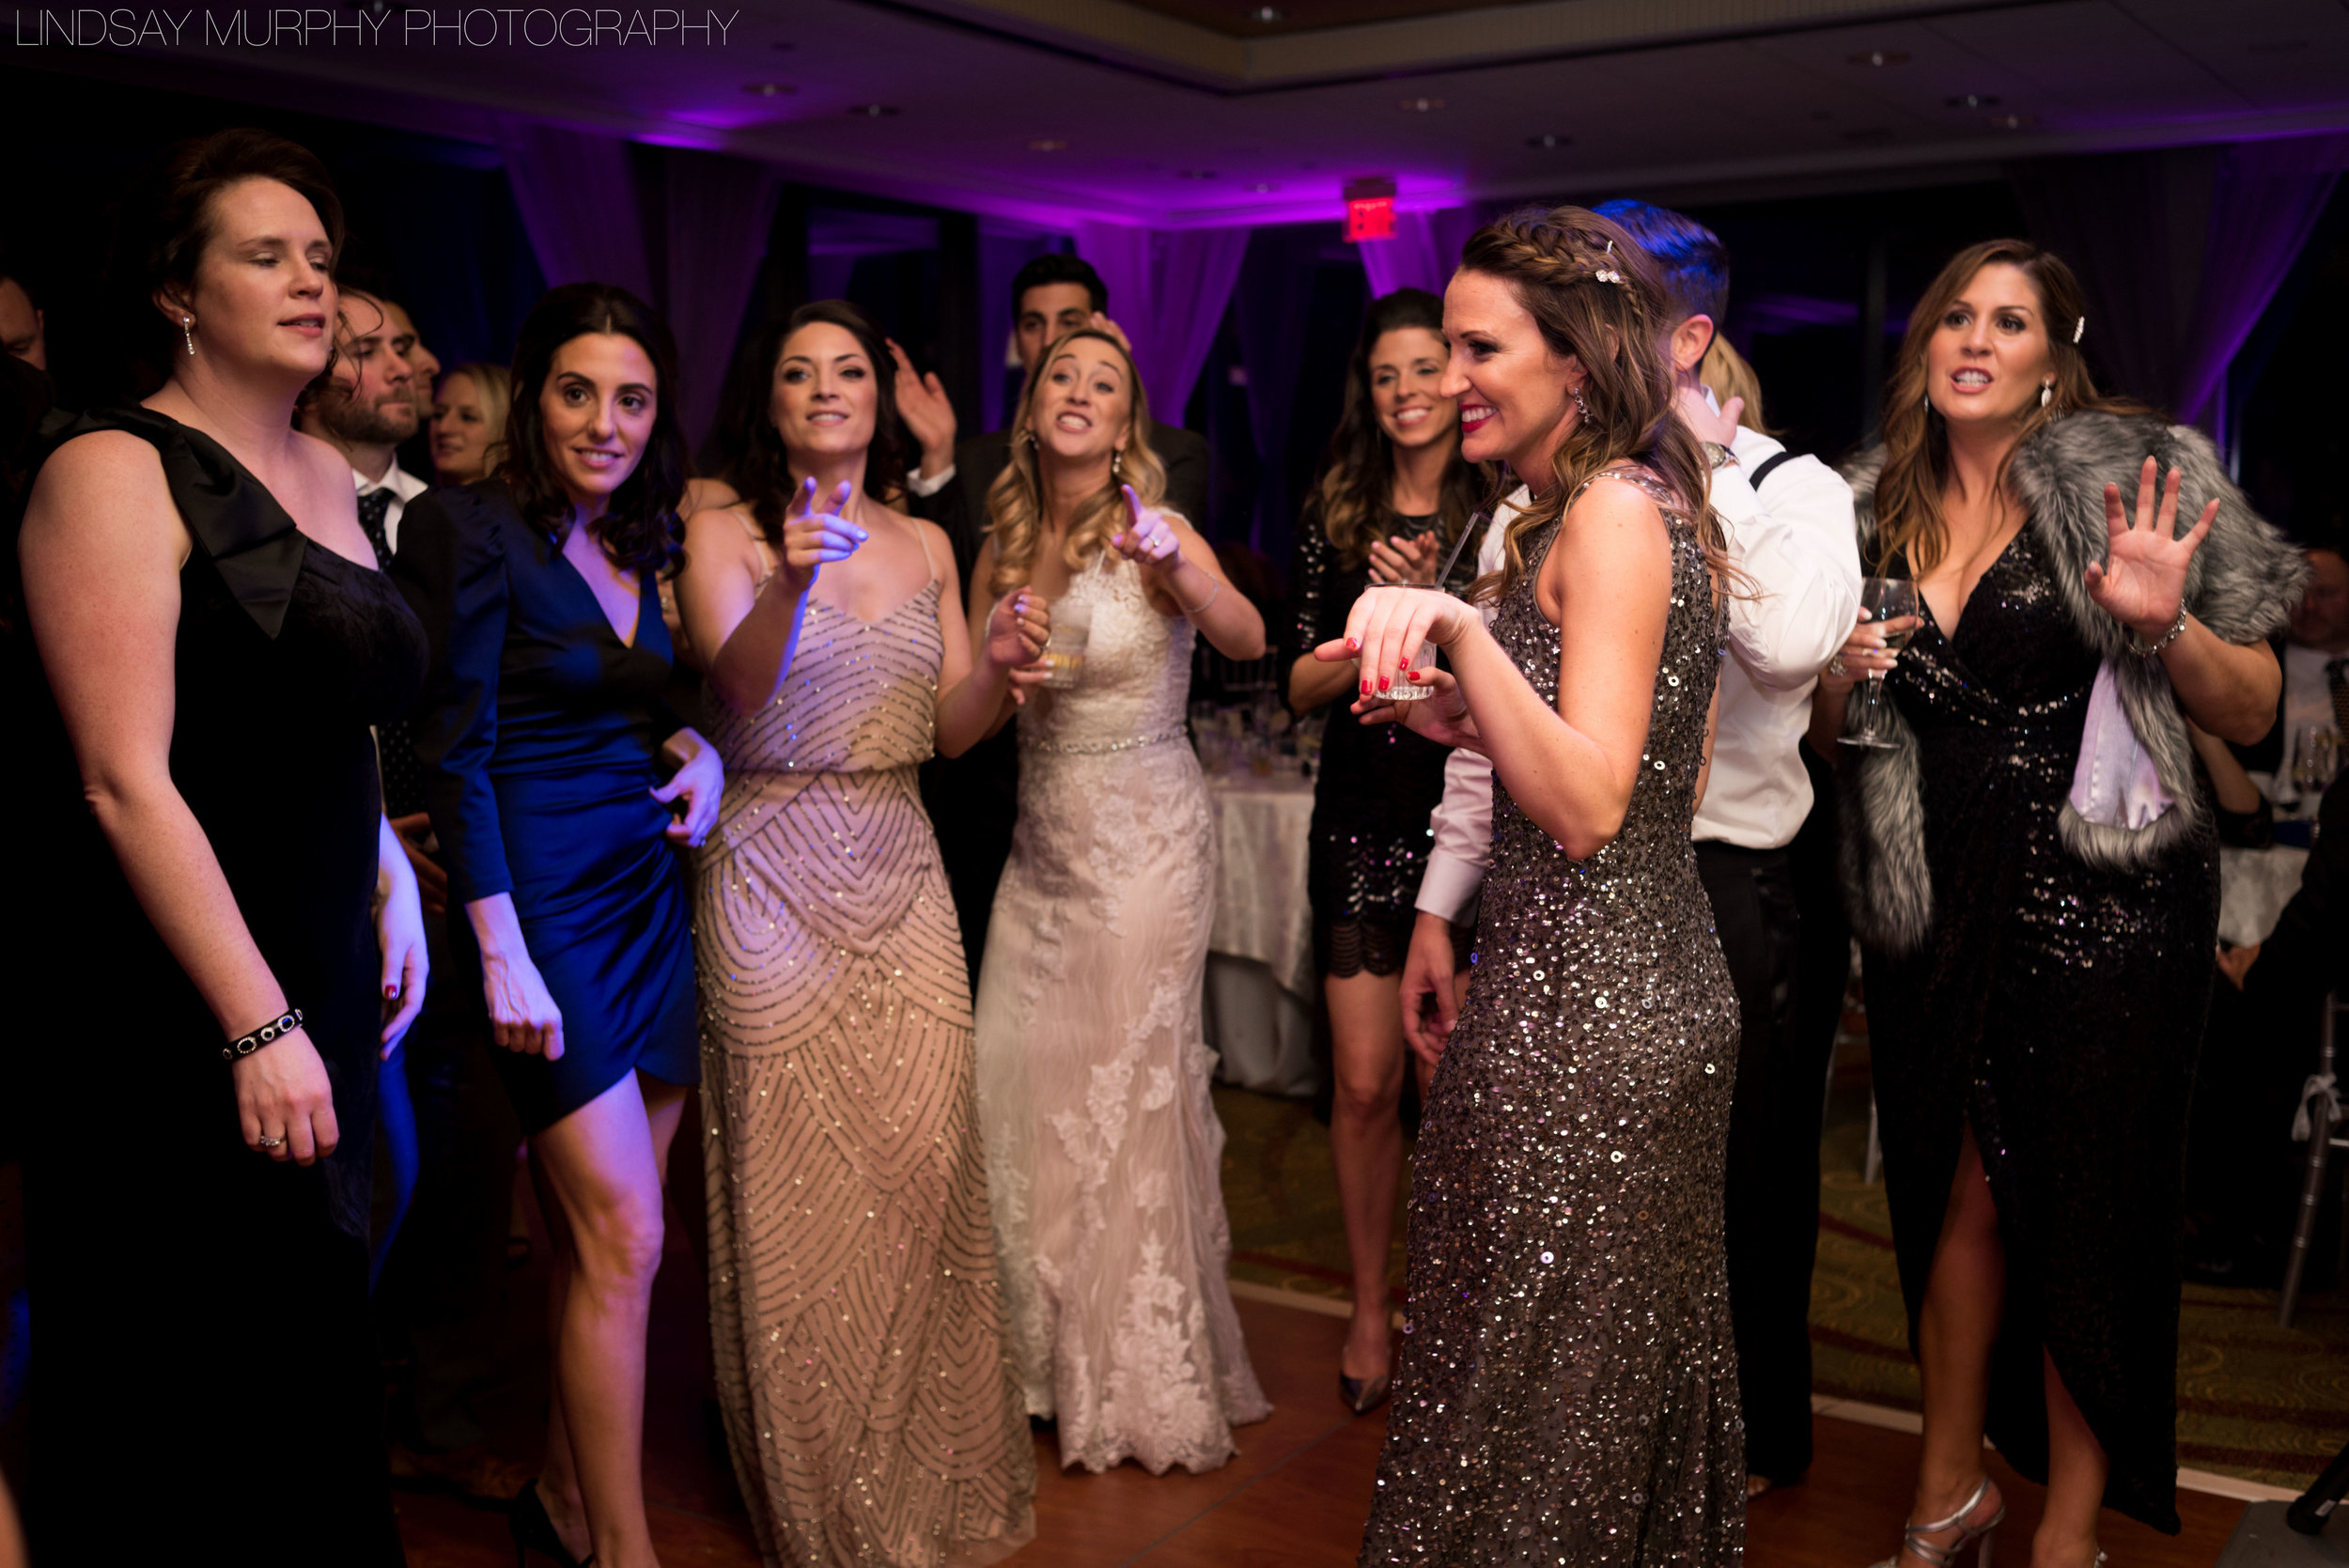 boston_wedding_photographer-570.jpg